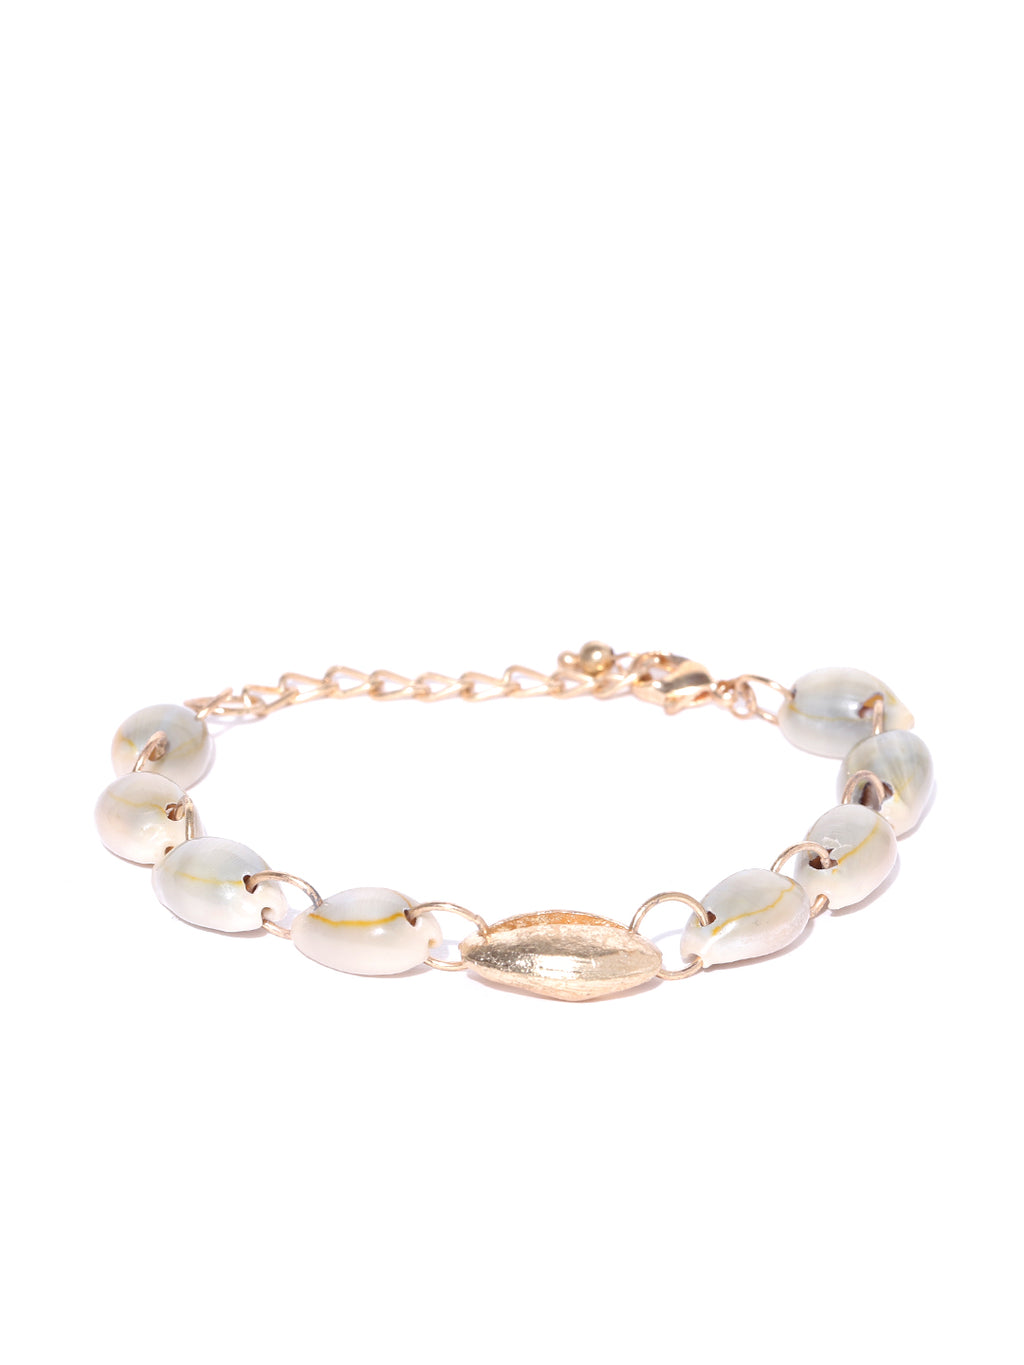 Blueberry golden and white shell bracelet